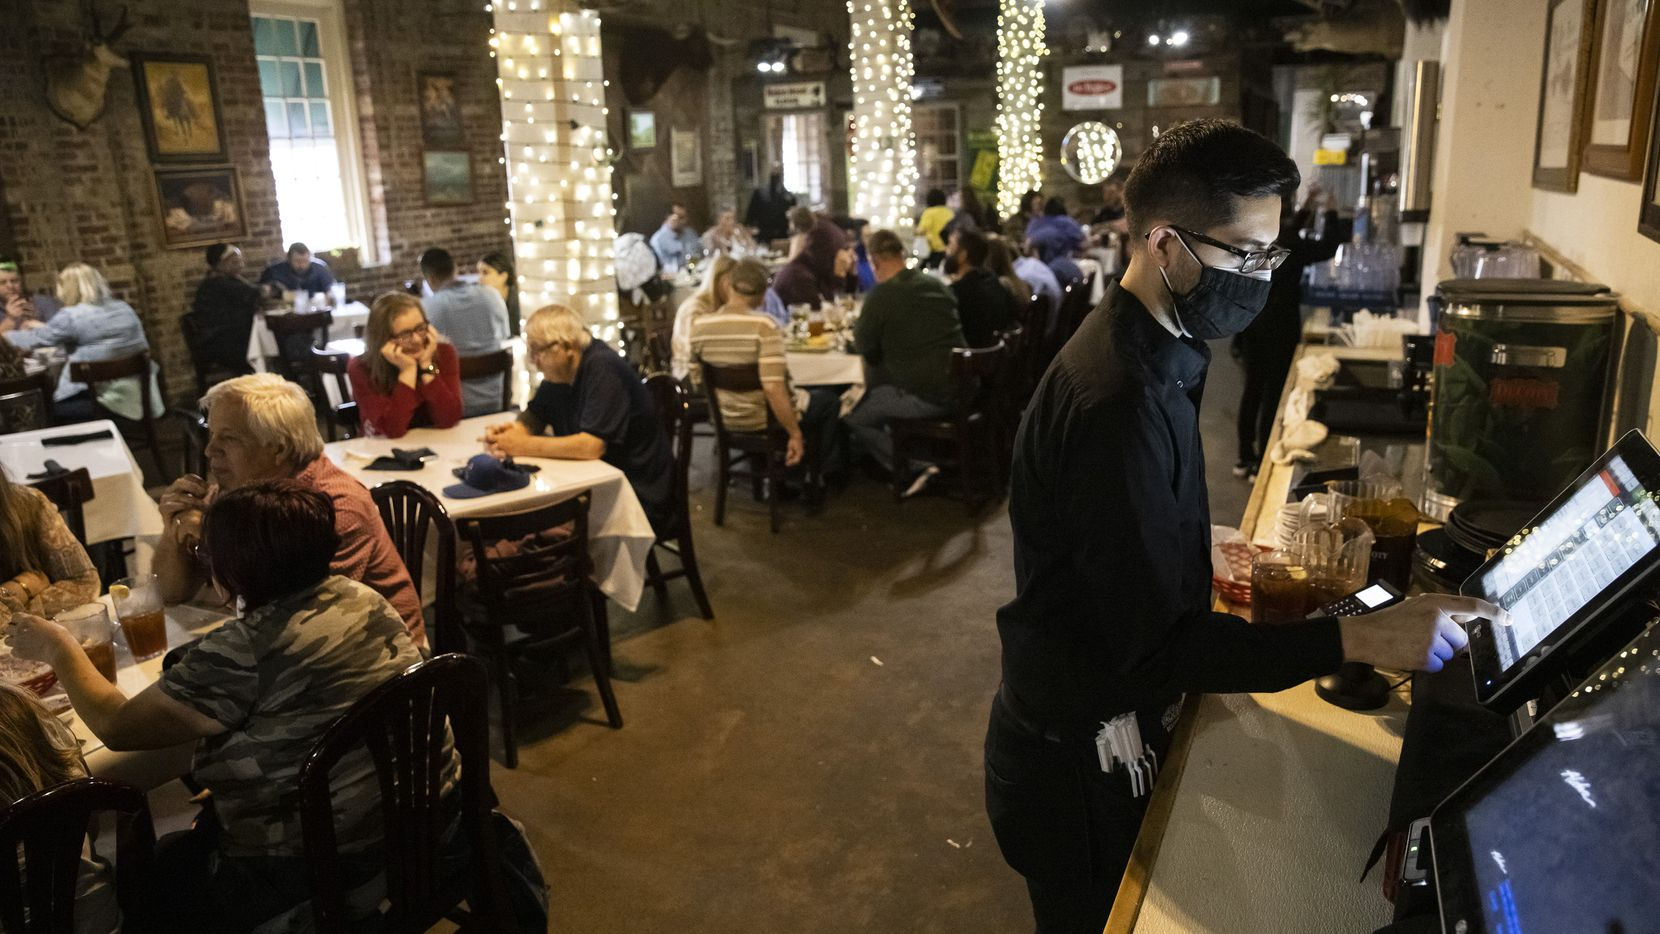 Customers visit Los Vaqueros in Fort Worth for an early dinner on Saturday, March 13, 2021. A year earlier, Los Vaqueros temporarily closed its dining room because of the impending coronavirus pandemic.